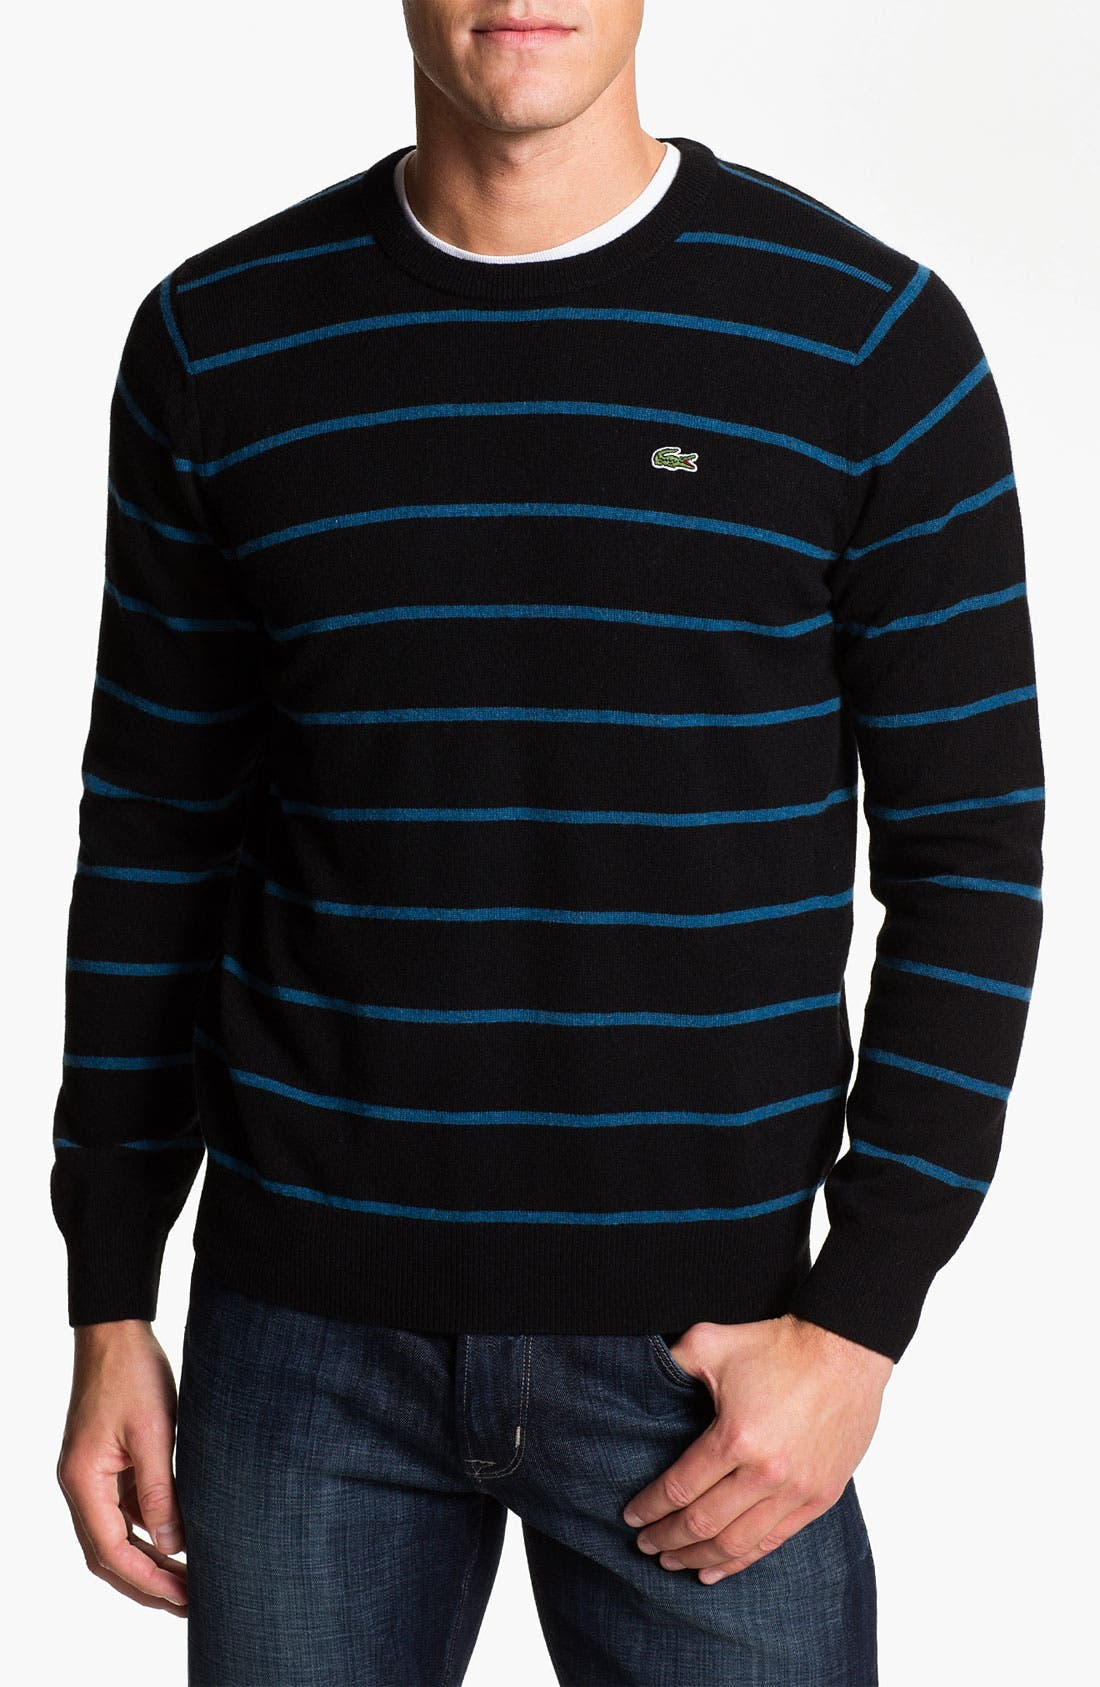 Alternate Image 1 Selected - Lacoste Stripe Wool Crewneck Sweater